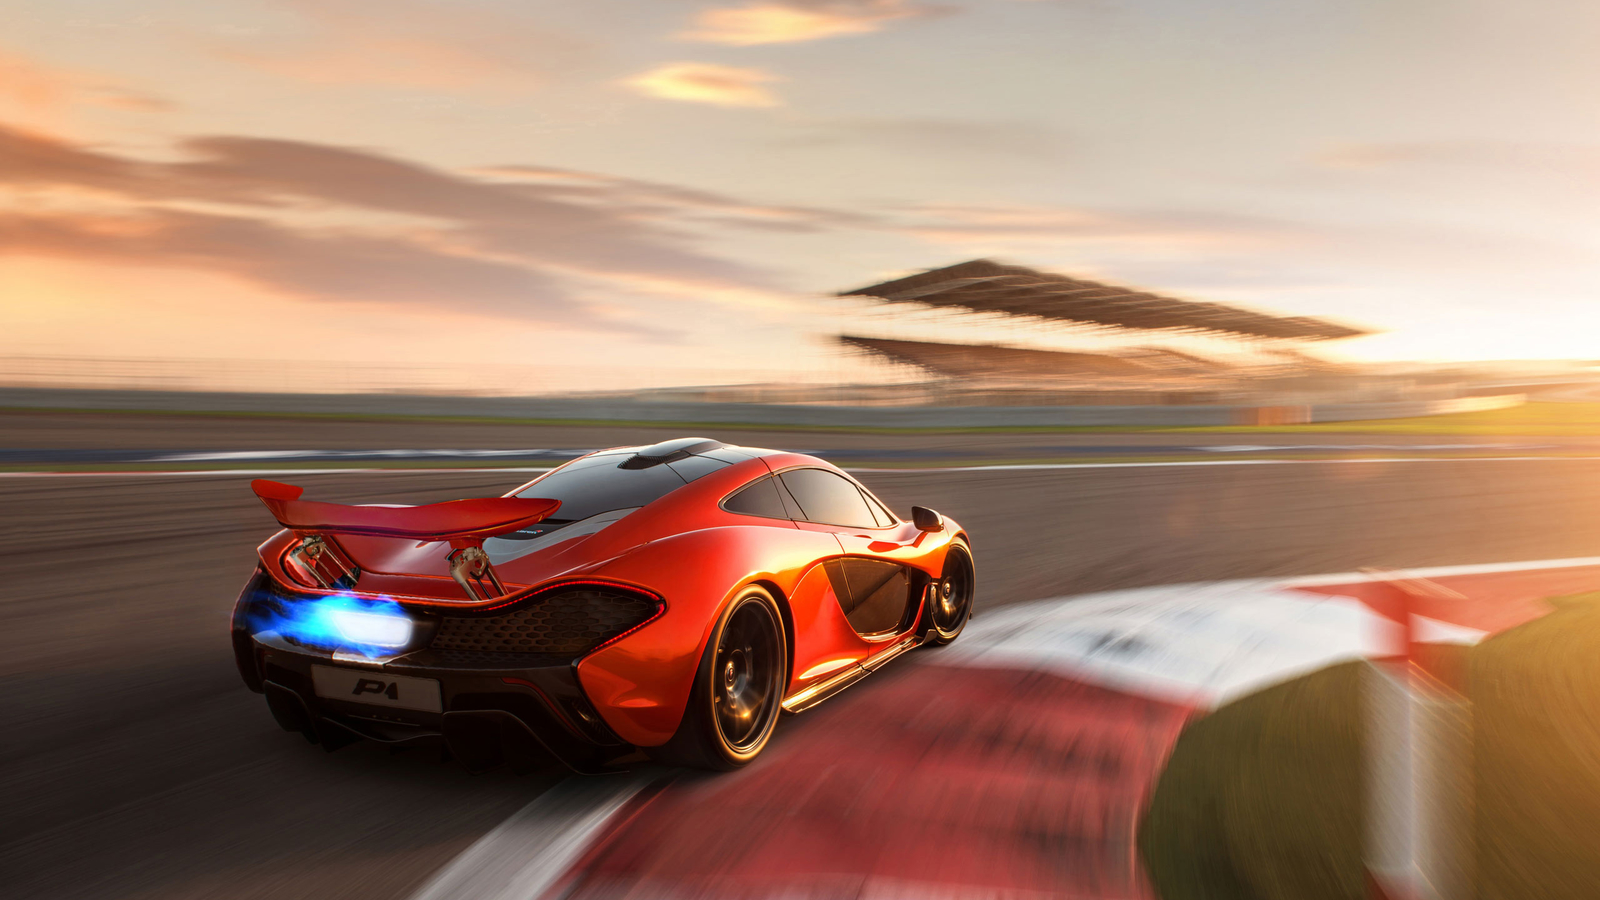 Mclaren Supercar Wallpaper Download 49679 Automotive Wallpapers